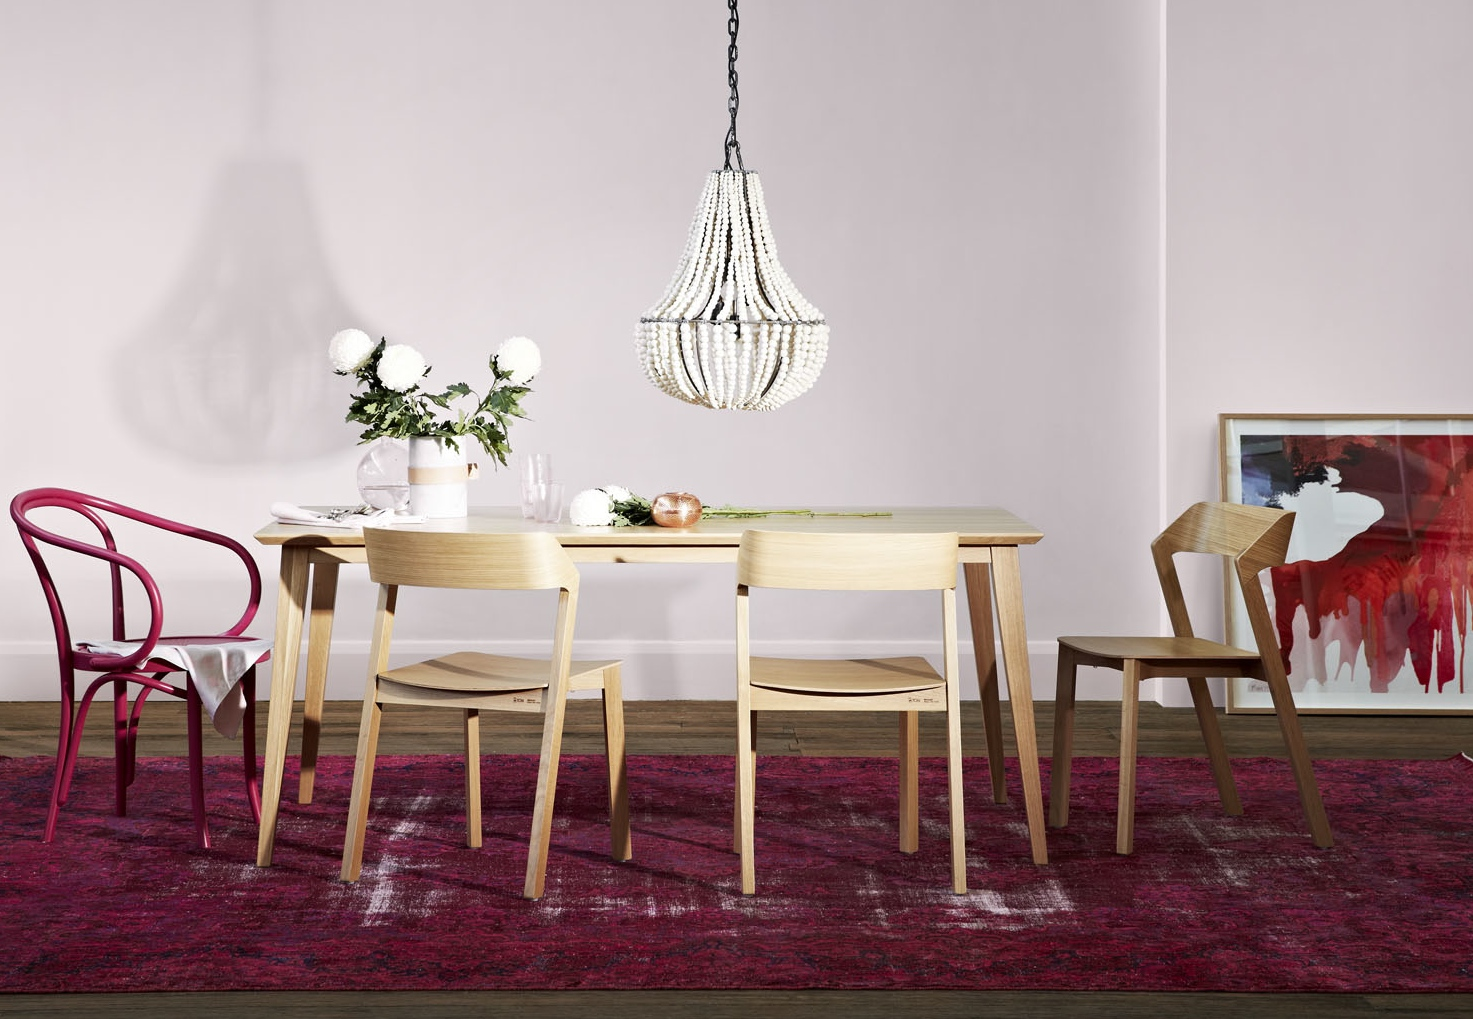 WHITE LIM: Pink Bentwood Chair + TON dining table and chairs from Relax House, Pink Overdyed Rug from Halcyon Lake, Artwork by MYNE By Prudence Caroline